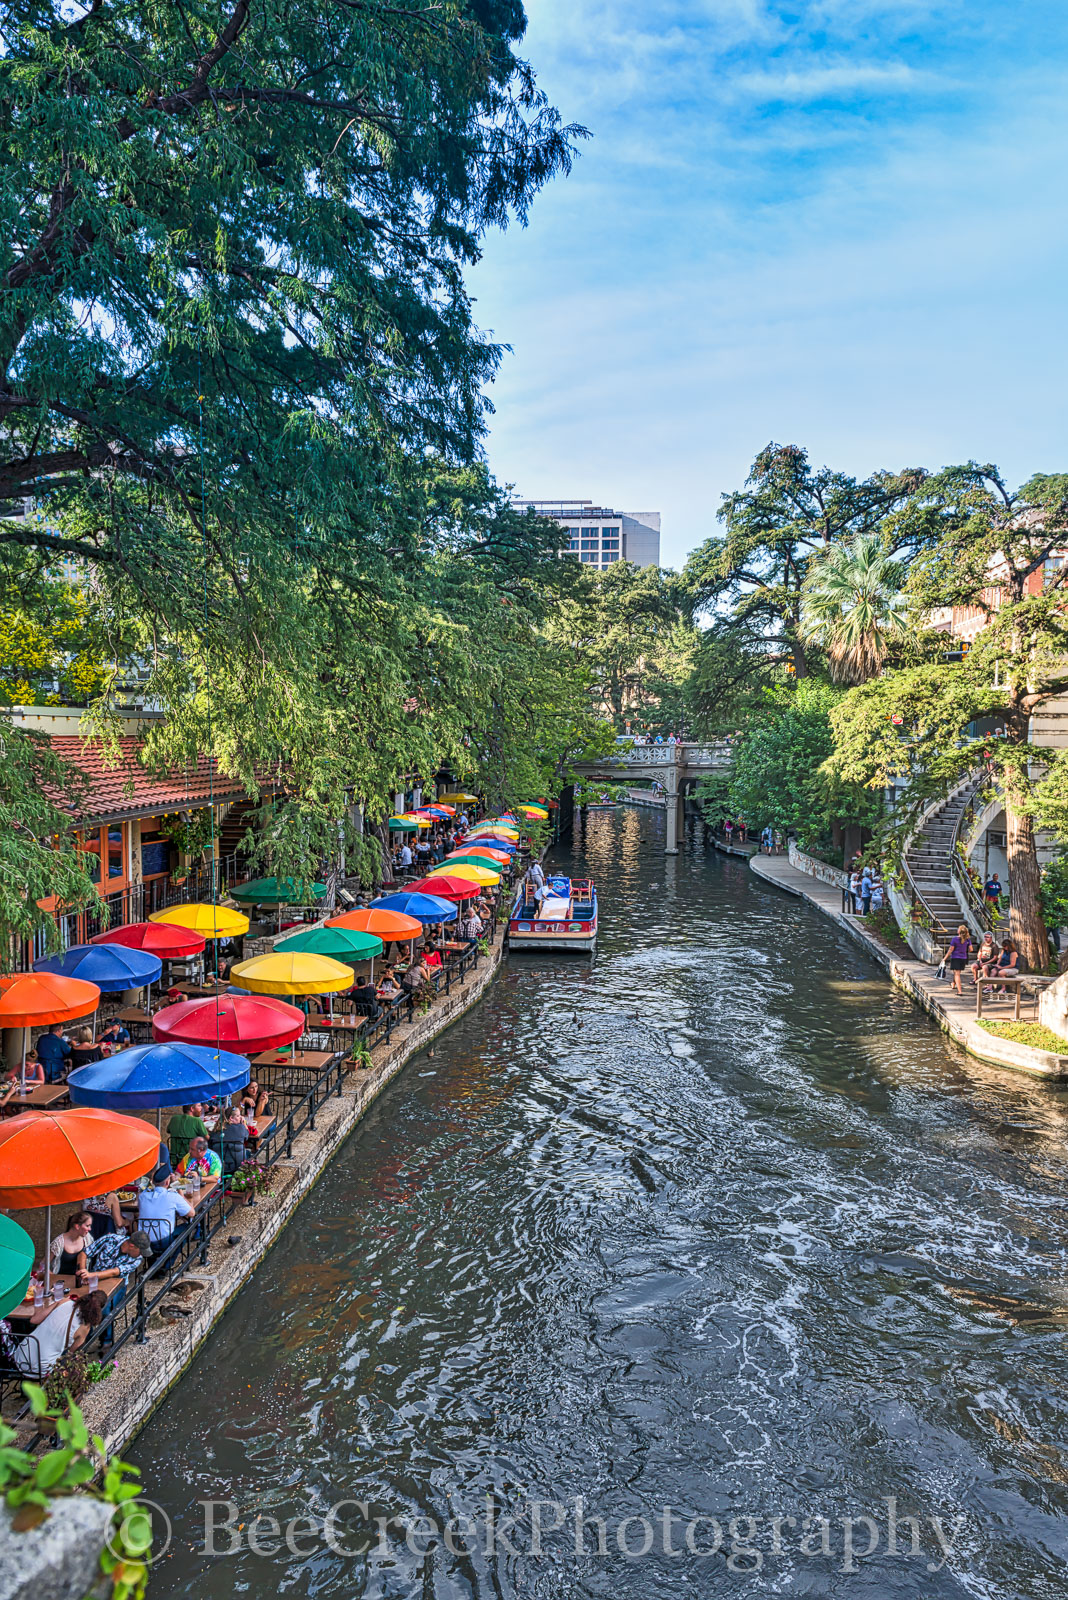 Casa Rio, River Boat, River Walk, Riverwalk, San Antonio, boat rides, city, cityscape, cityscapes, colorful umbrellas, destinations, downtown, drinks, food, hotels, outside dinning, restaurants, shopp, photo